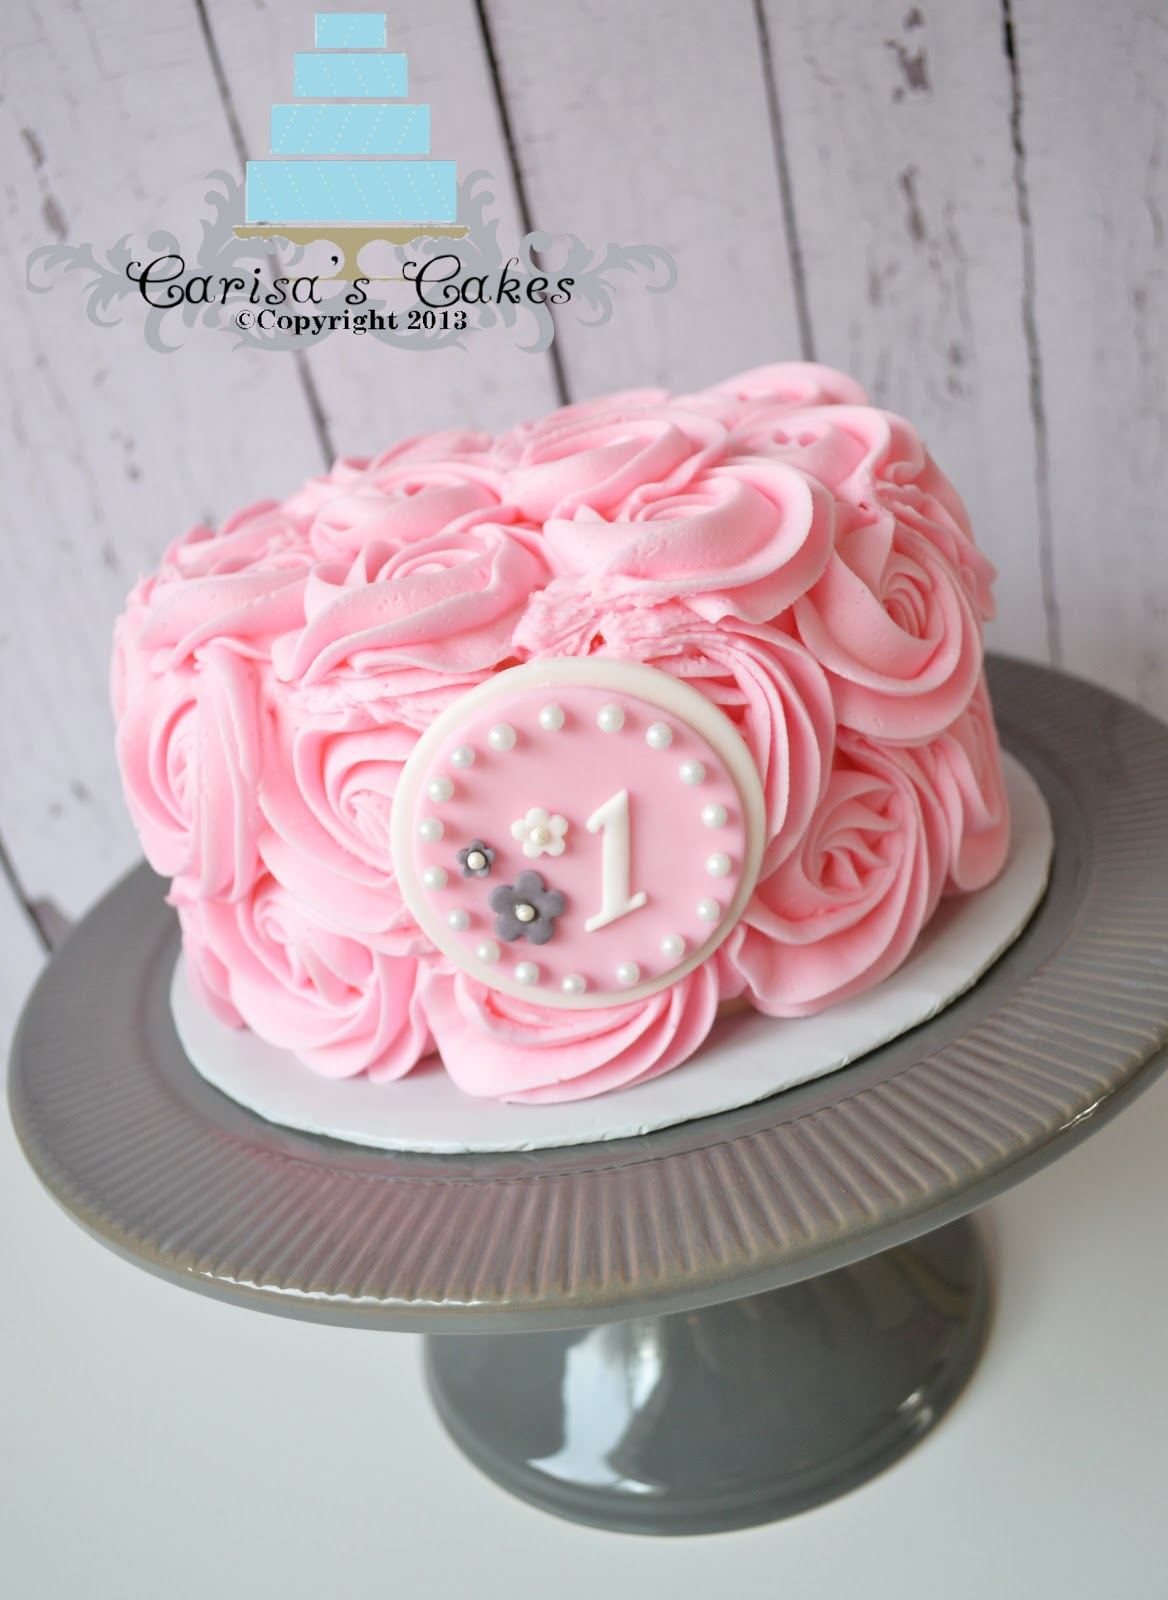 Mommypotamus First Birthday Cake Image Inspiration of Cake and